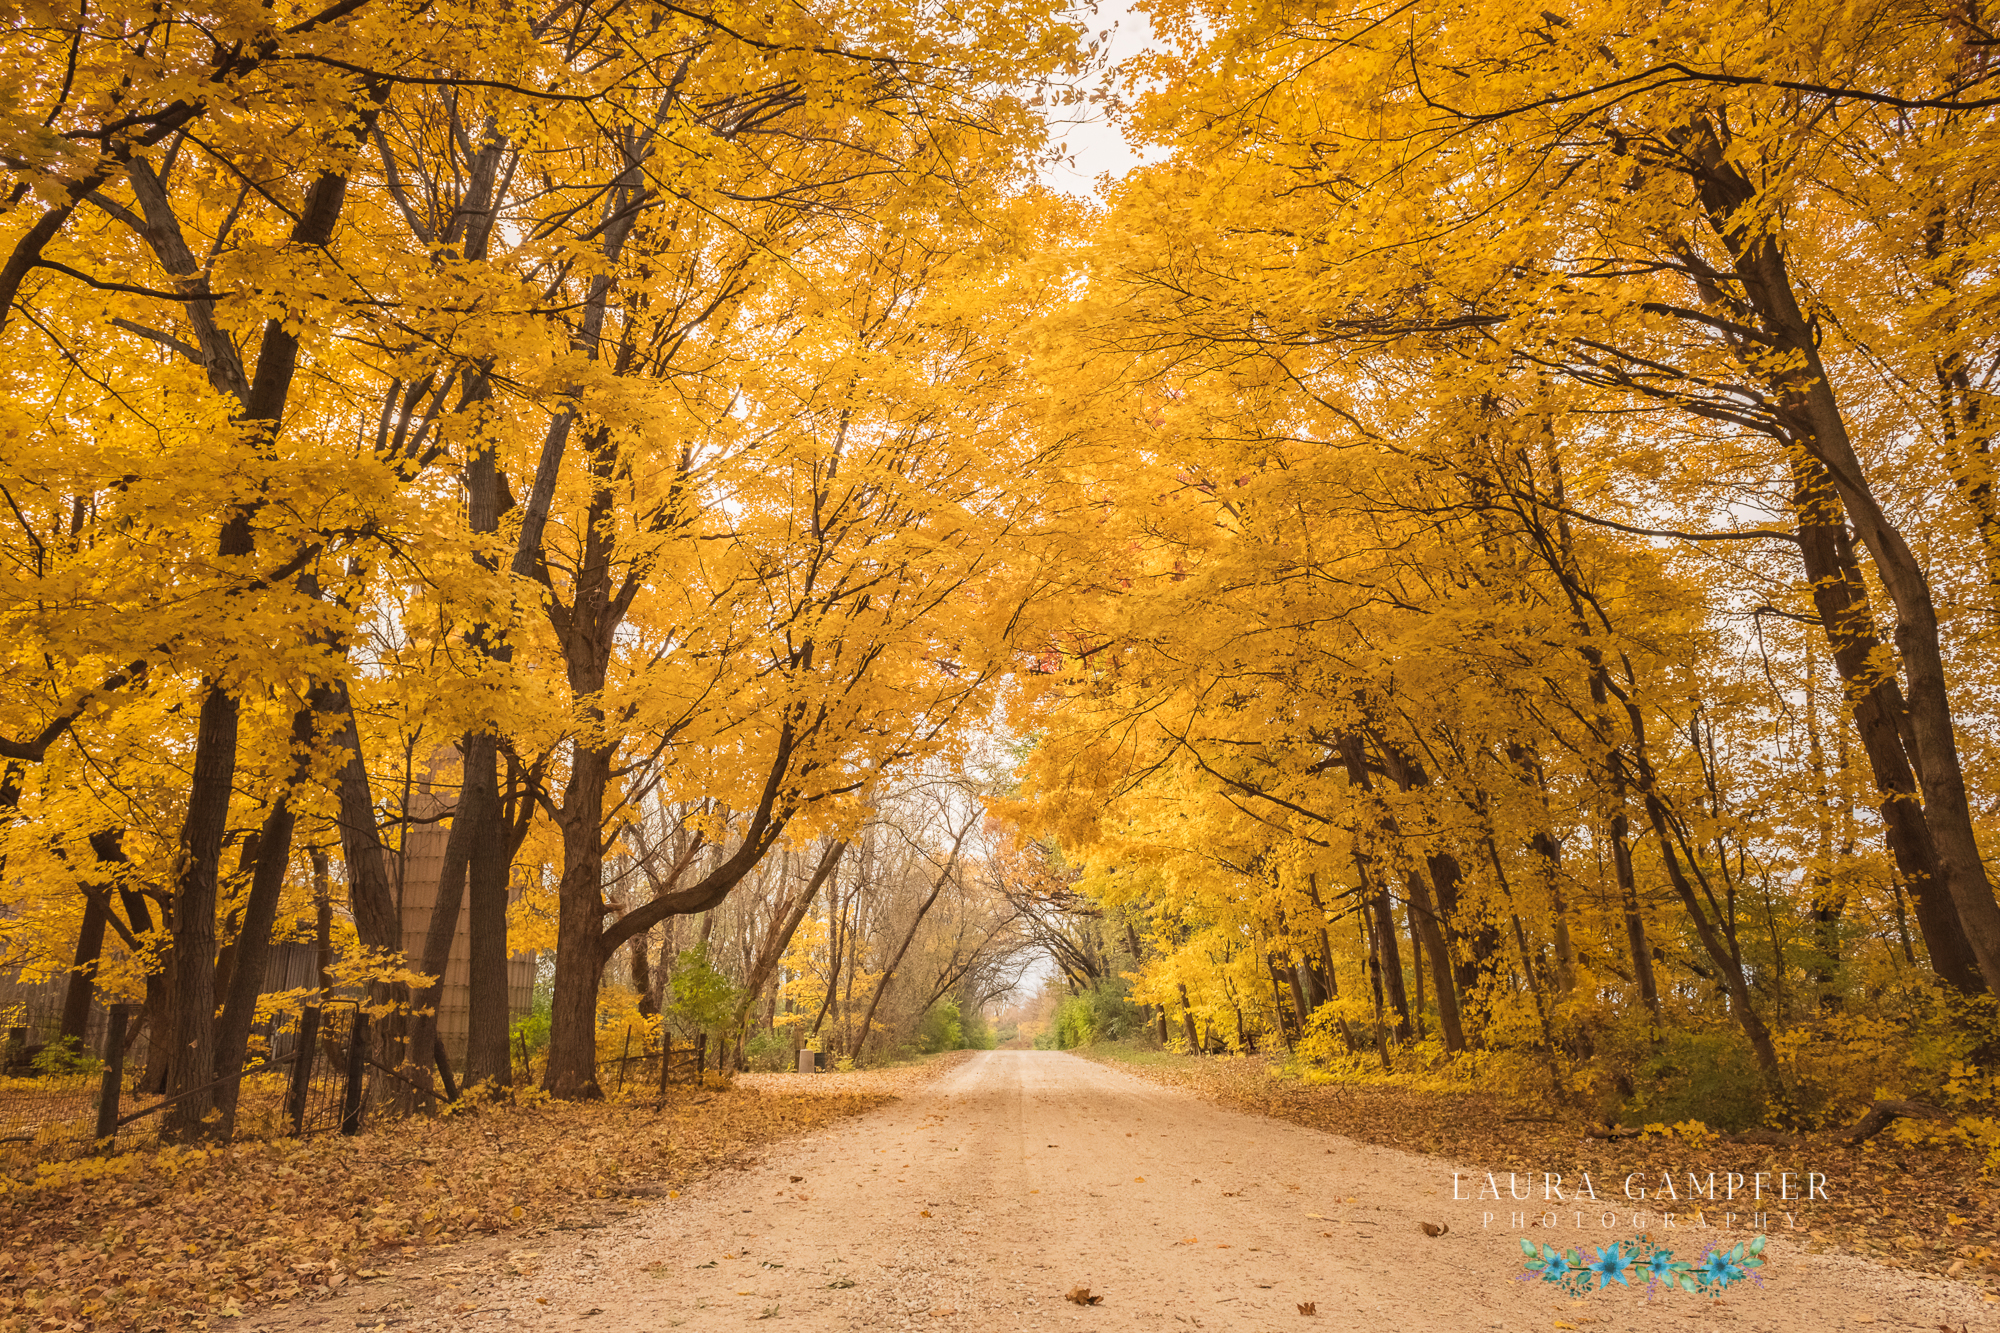 kane county rustic road, elburn illinois, laura gampfer photography